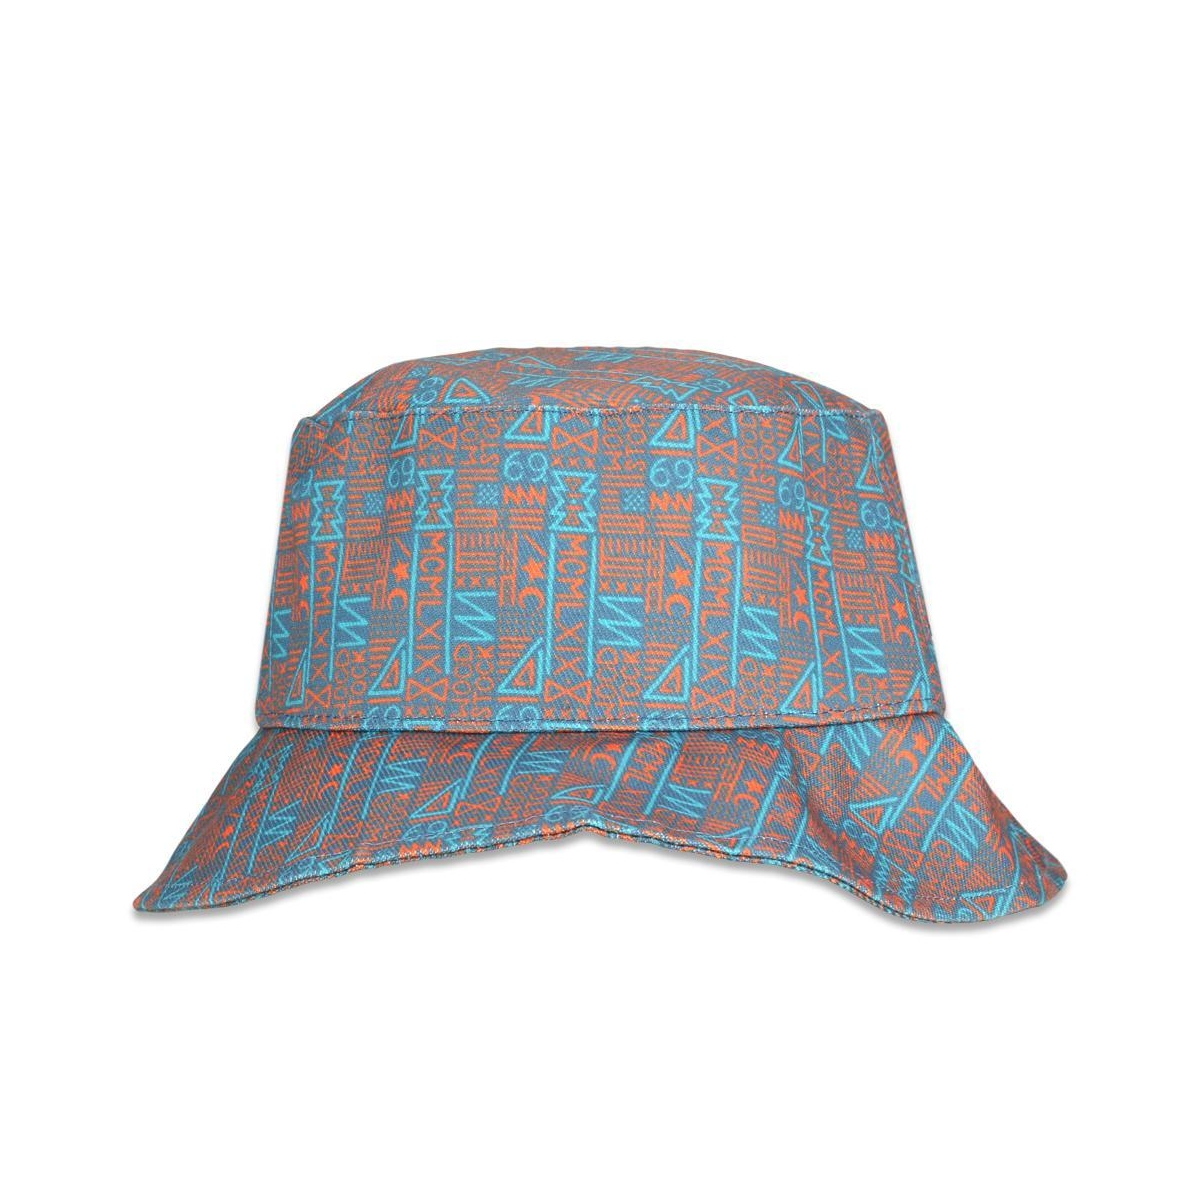 Woodstock New Native Bucket Hat